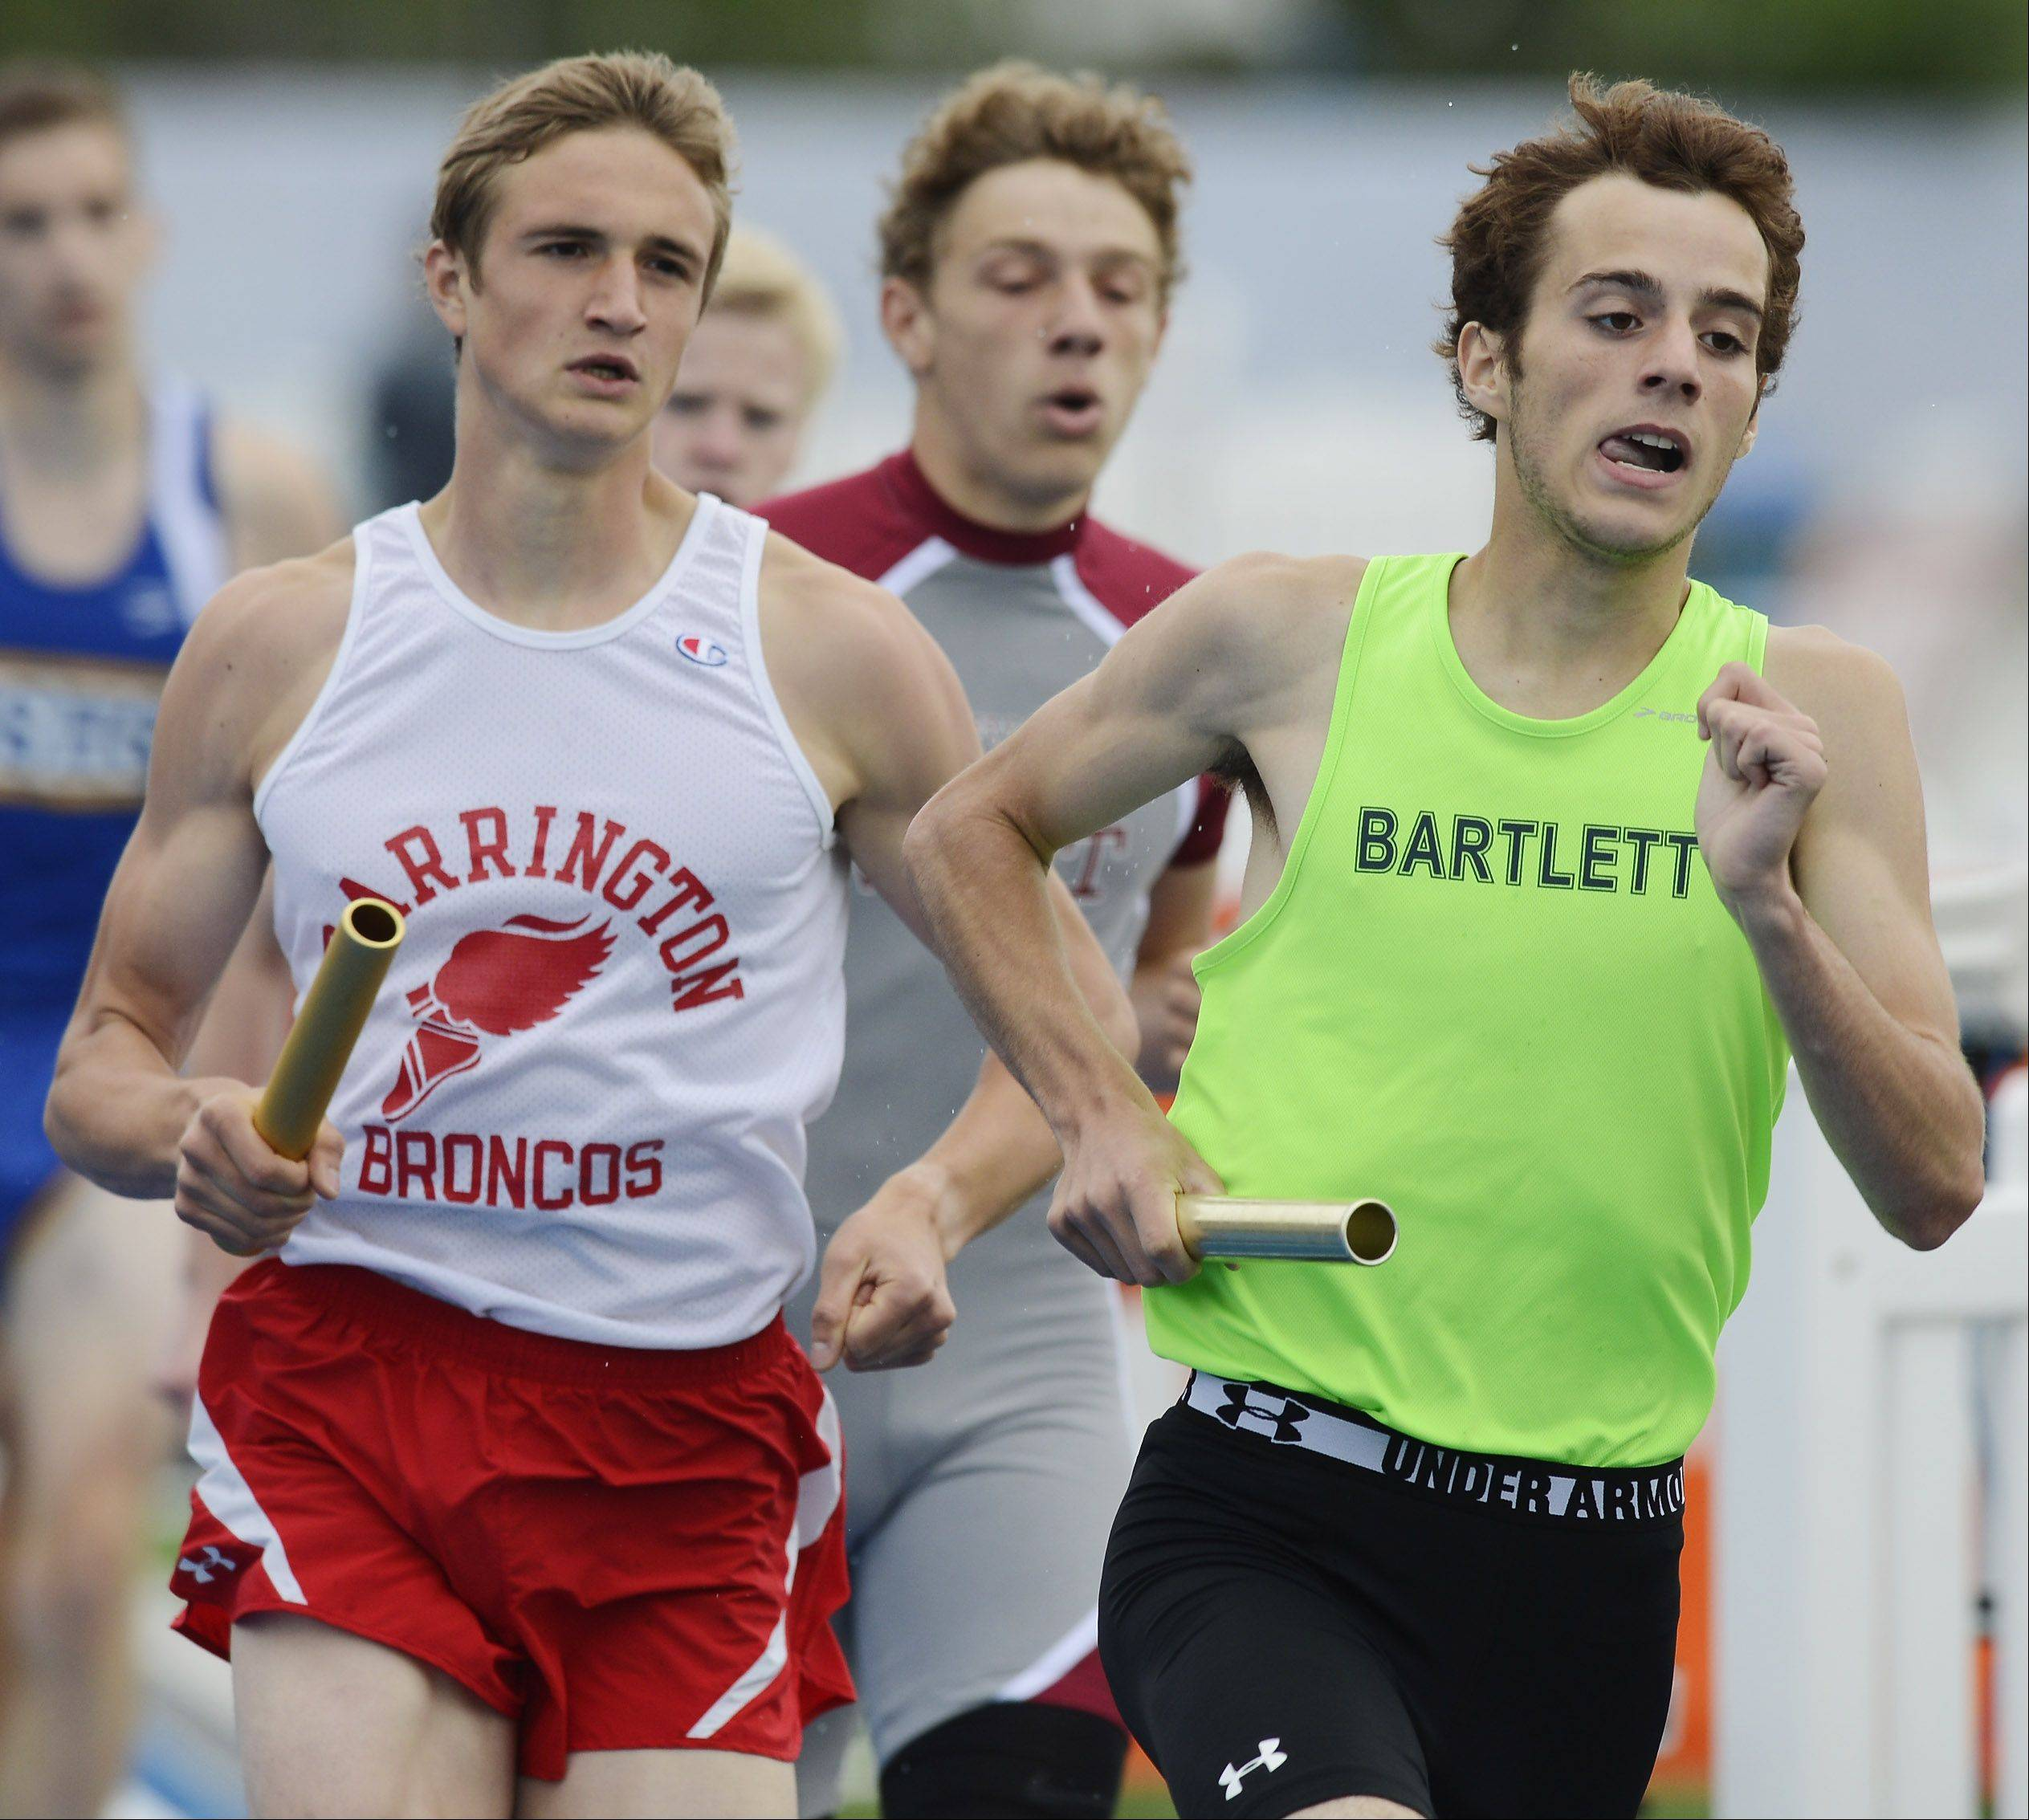 Barrington's David Cerny, left, is right behind Bartlett's Matt Hess in the Class 3A 4x800-meter relay during the boys state track finals in Charleston Saturday. Barrington won the event.